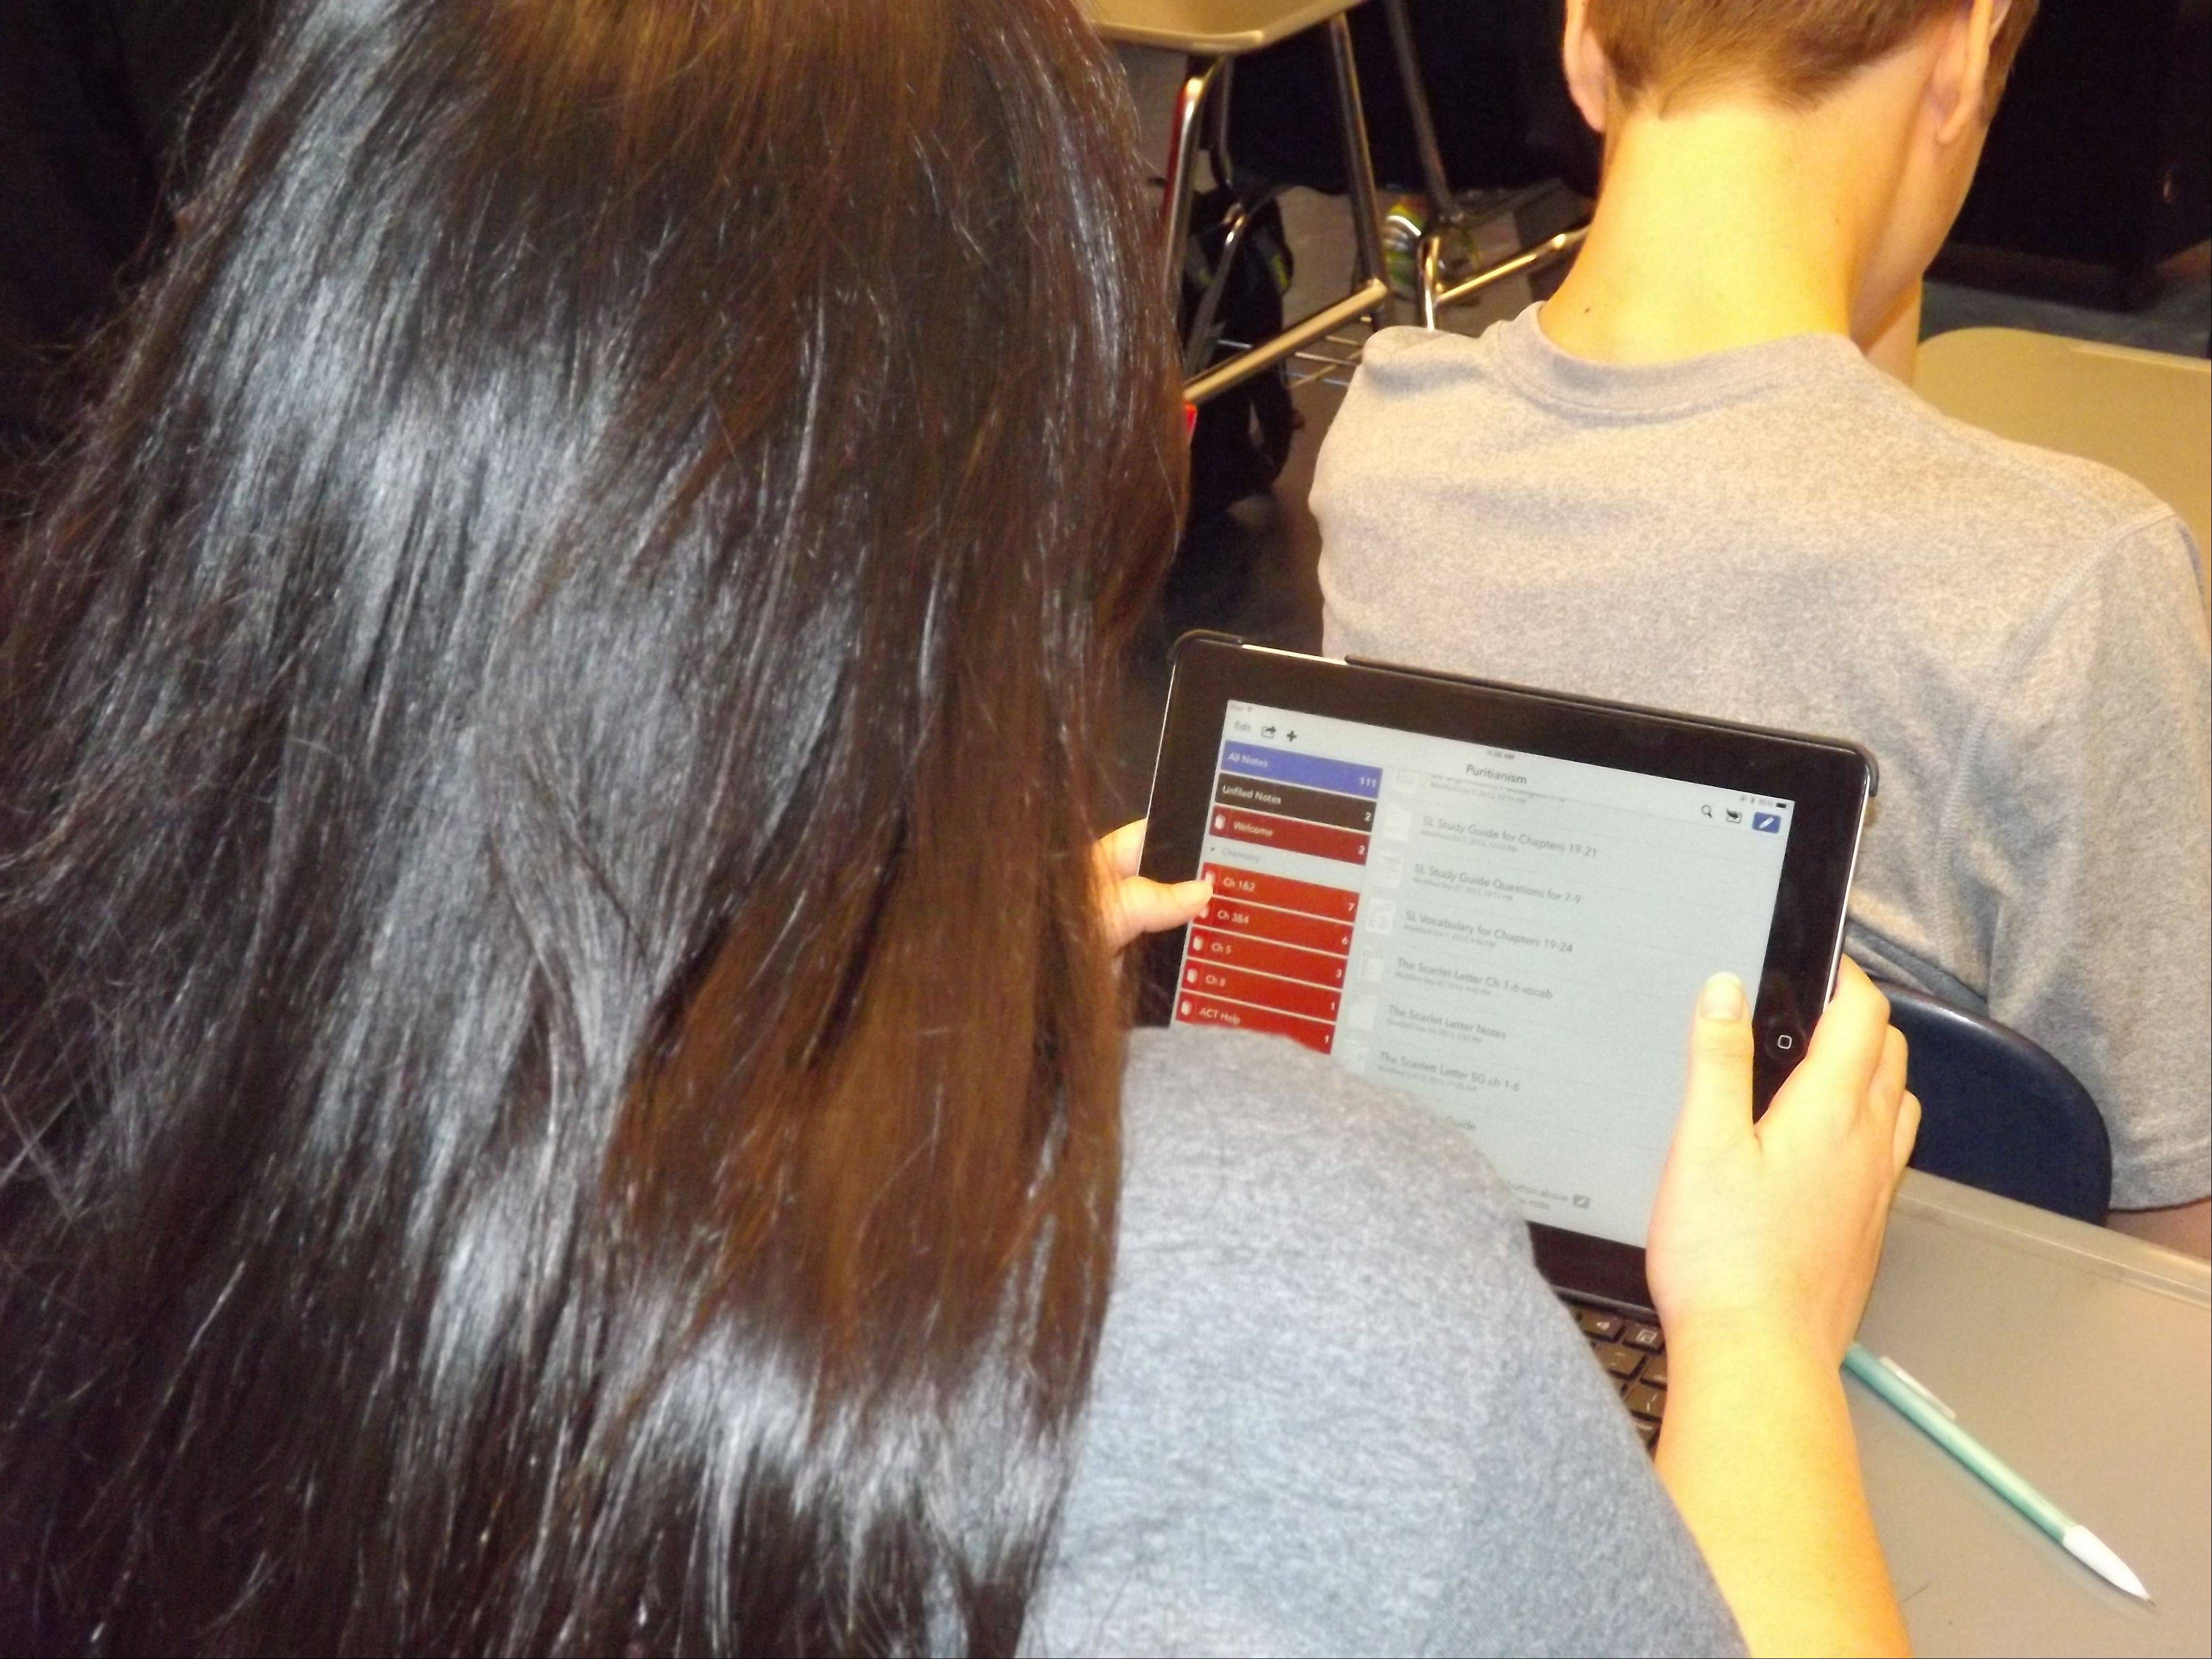 A student at Saint Viator High School uses an iPad in class. This is the first year St. Viator students are working exclusively with the iPad.